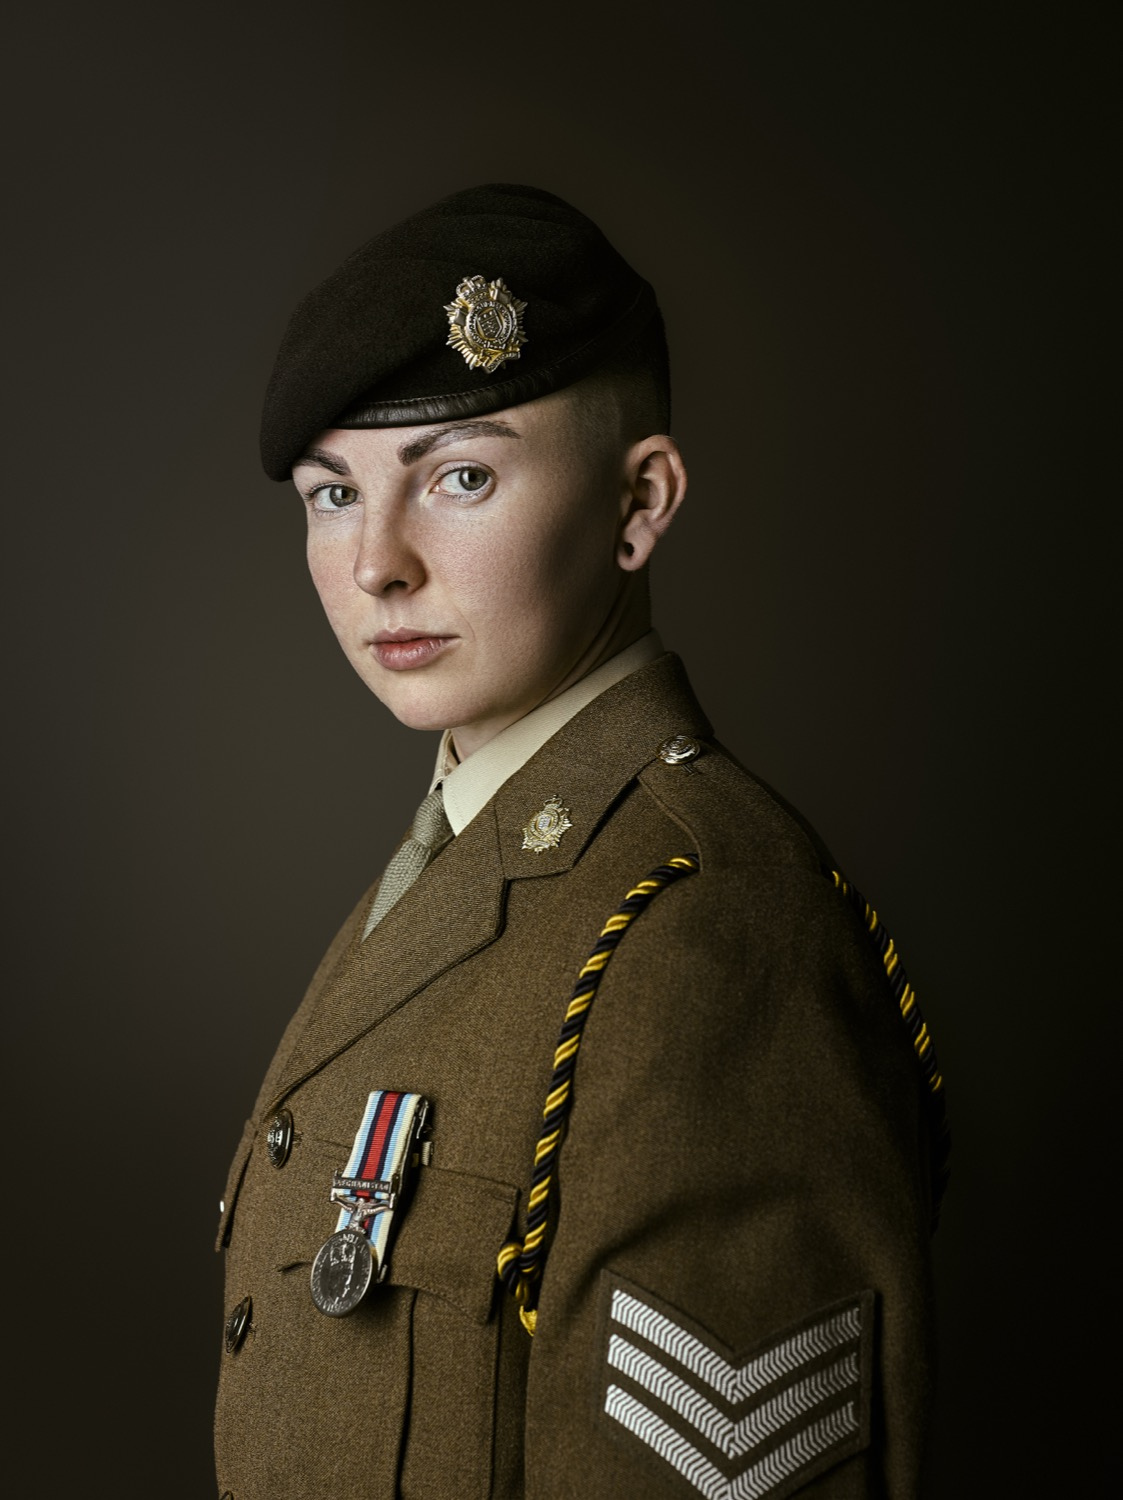 Sgt Perkins Royal Logistic Corps (Rory Lewis Photographer) 2018 Transgender Army Portraits